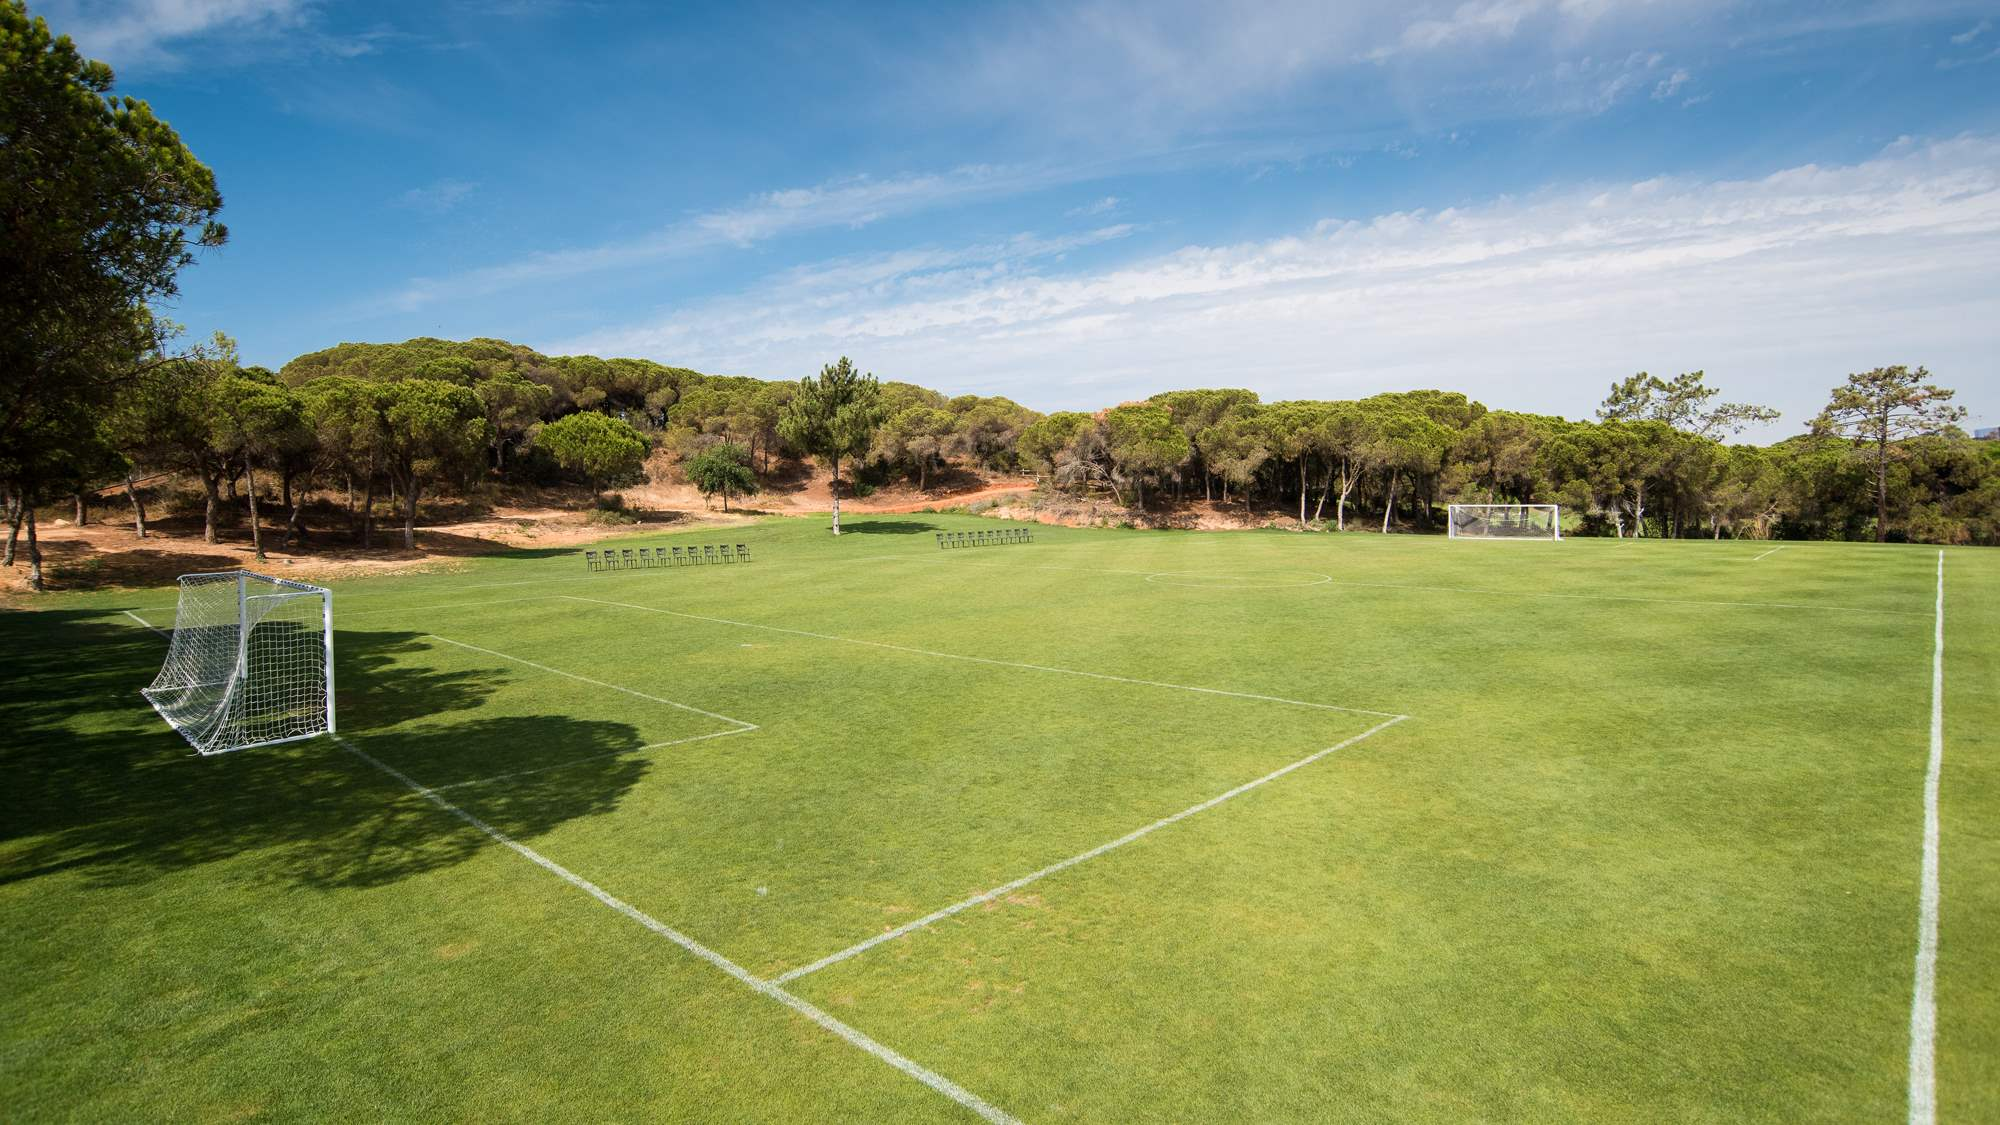 Pine Cliffs Gardens, One Bedroom Suite, S/C Basis, 1 bedroom apartment in Pine Cliffs Resort, Algarve Photo #53